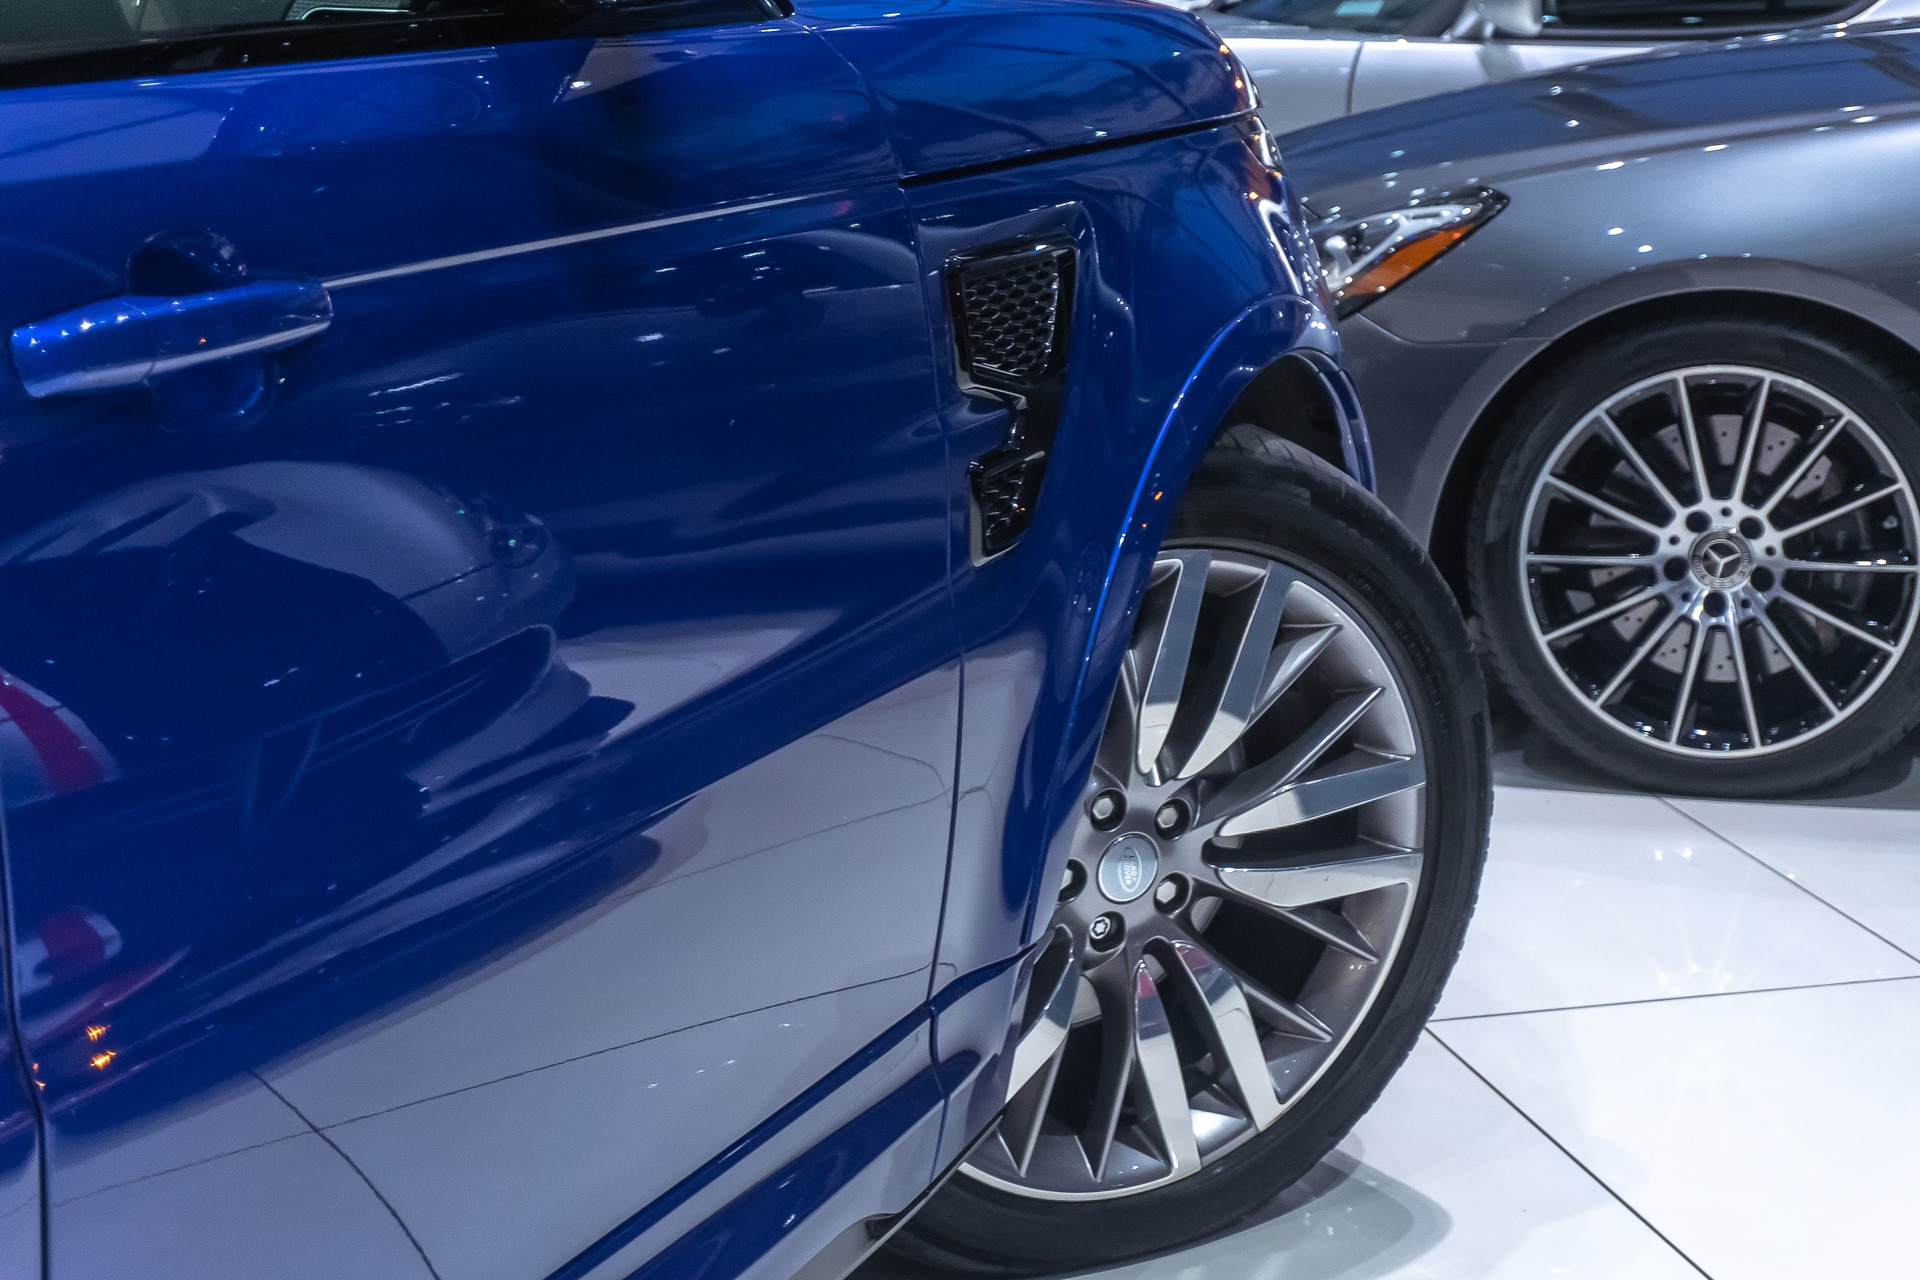 Used-2016-Land-Rover-Range-Rover-Sport-SVR-Supercharged-SUV-MERIDIAN-SOUND-SYSTEM-DRIVER-ASSISTANCE-PACKAGE